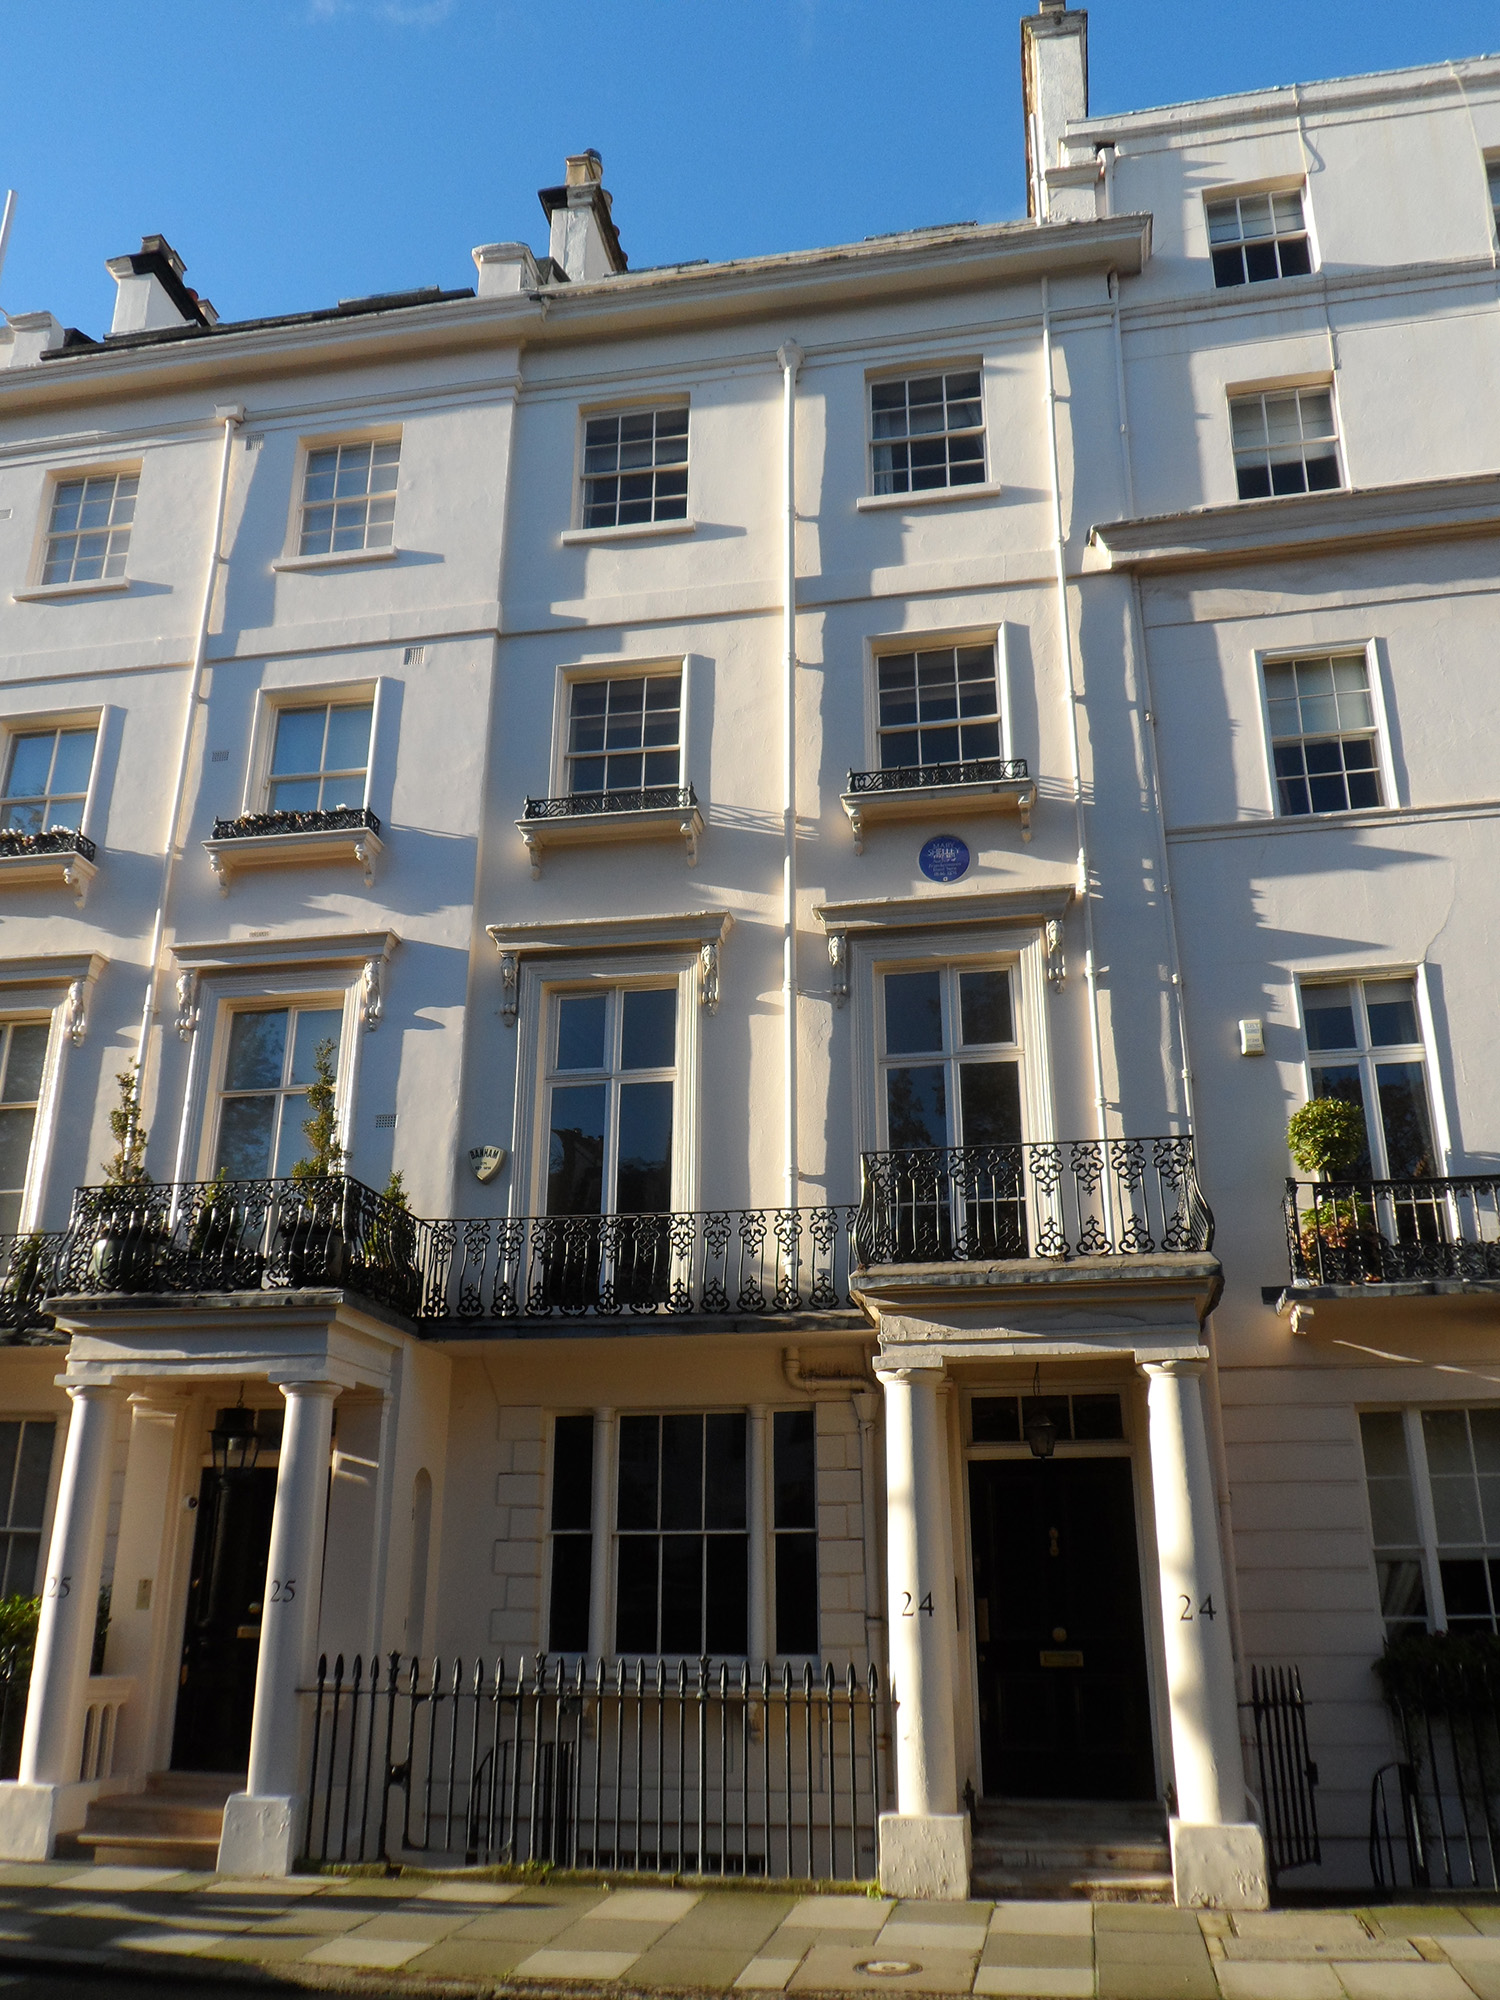 File:MARY SHELLEY - 24 Chester Square, Belgravia, London ...